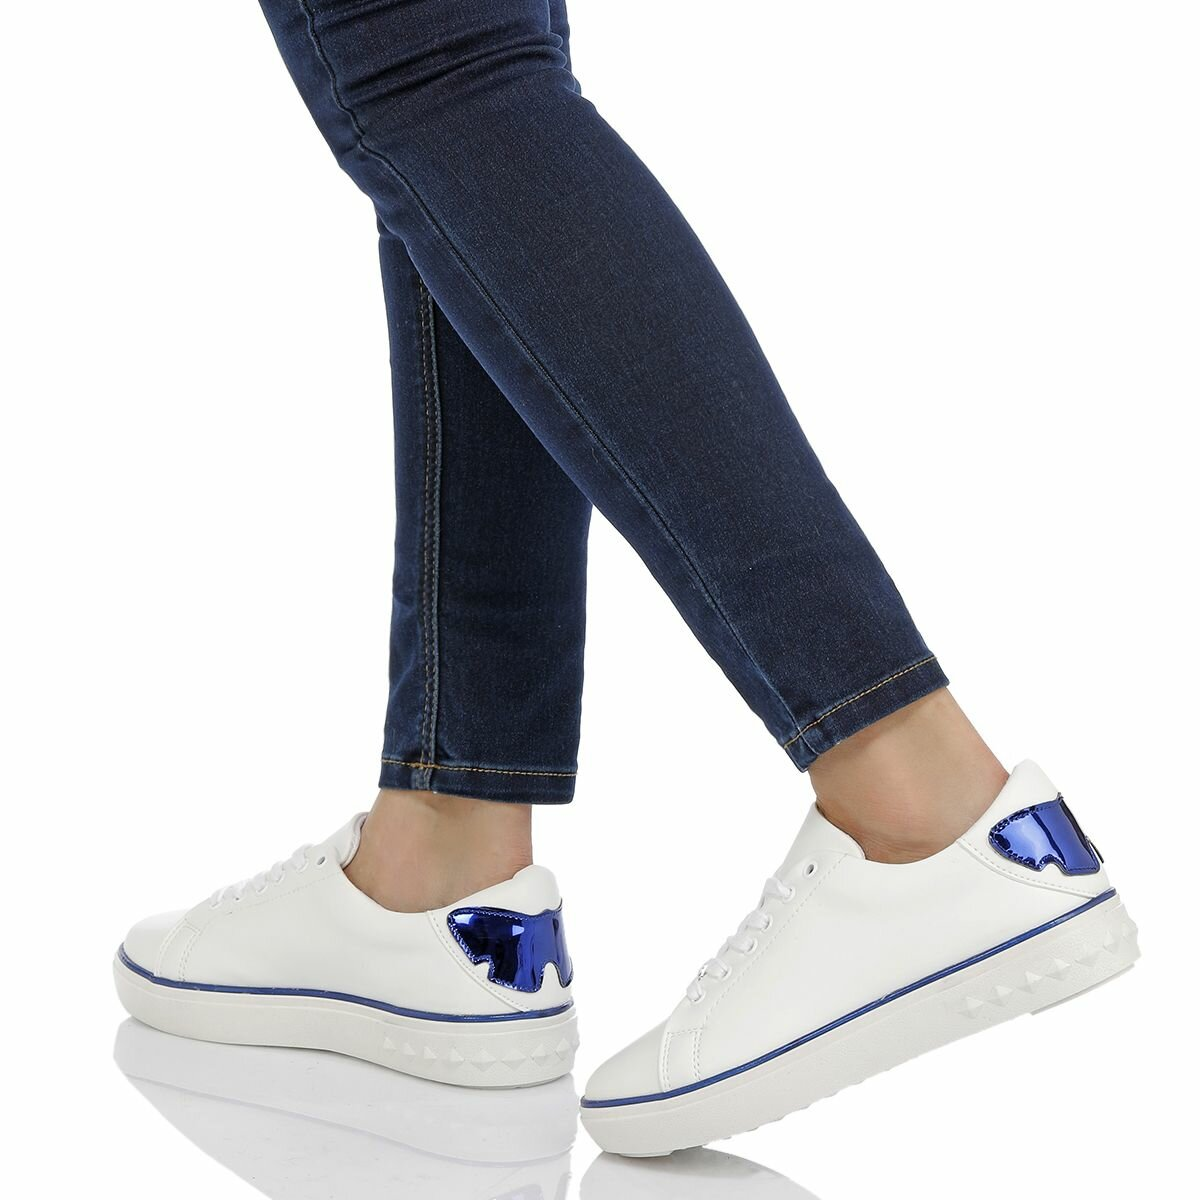 FLO 18S-533 White Women 'S Shoes BUTIGO